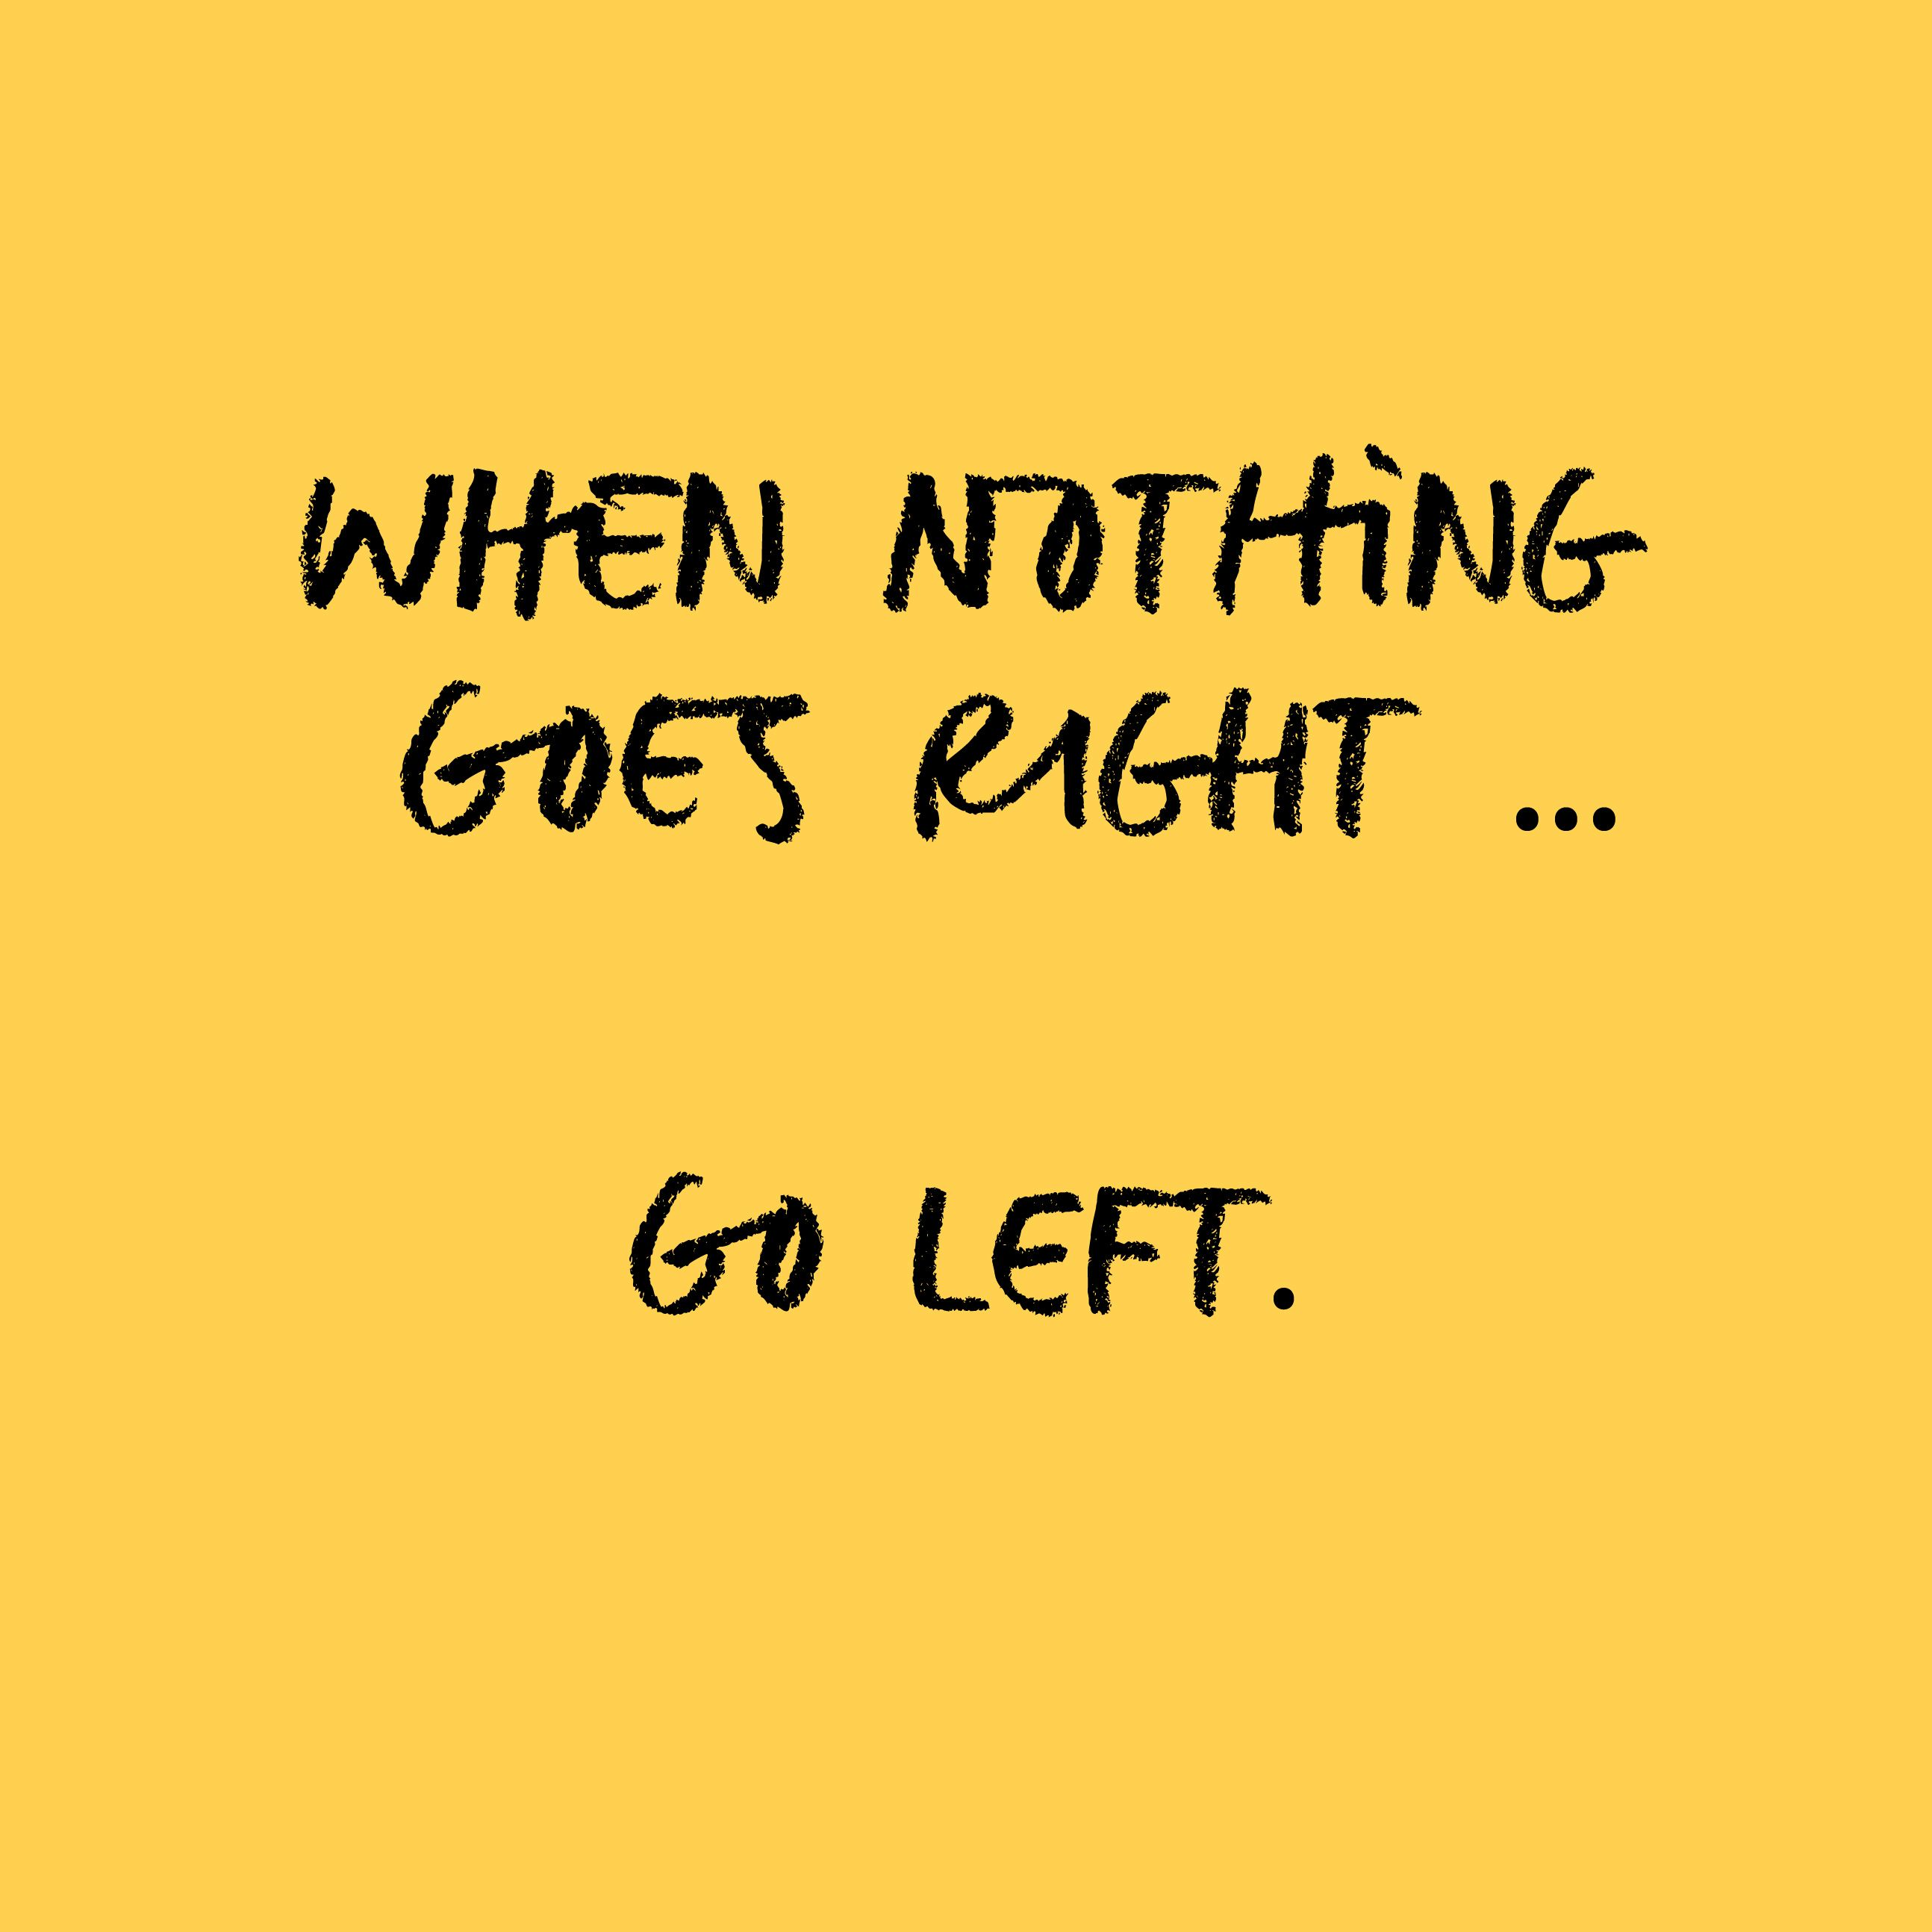 Quote Funny Nothing Goes Right Go Left Truestory Blog Instagram Yellow Background Meme Instagram Design Social Media Template All Quotes